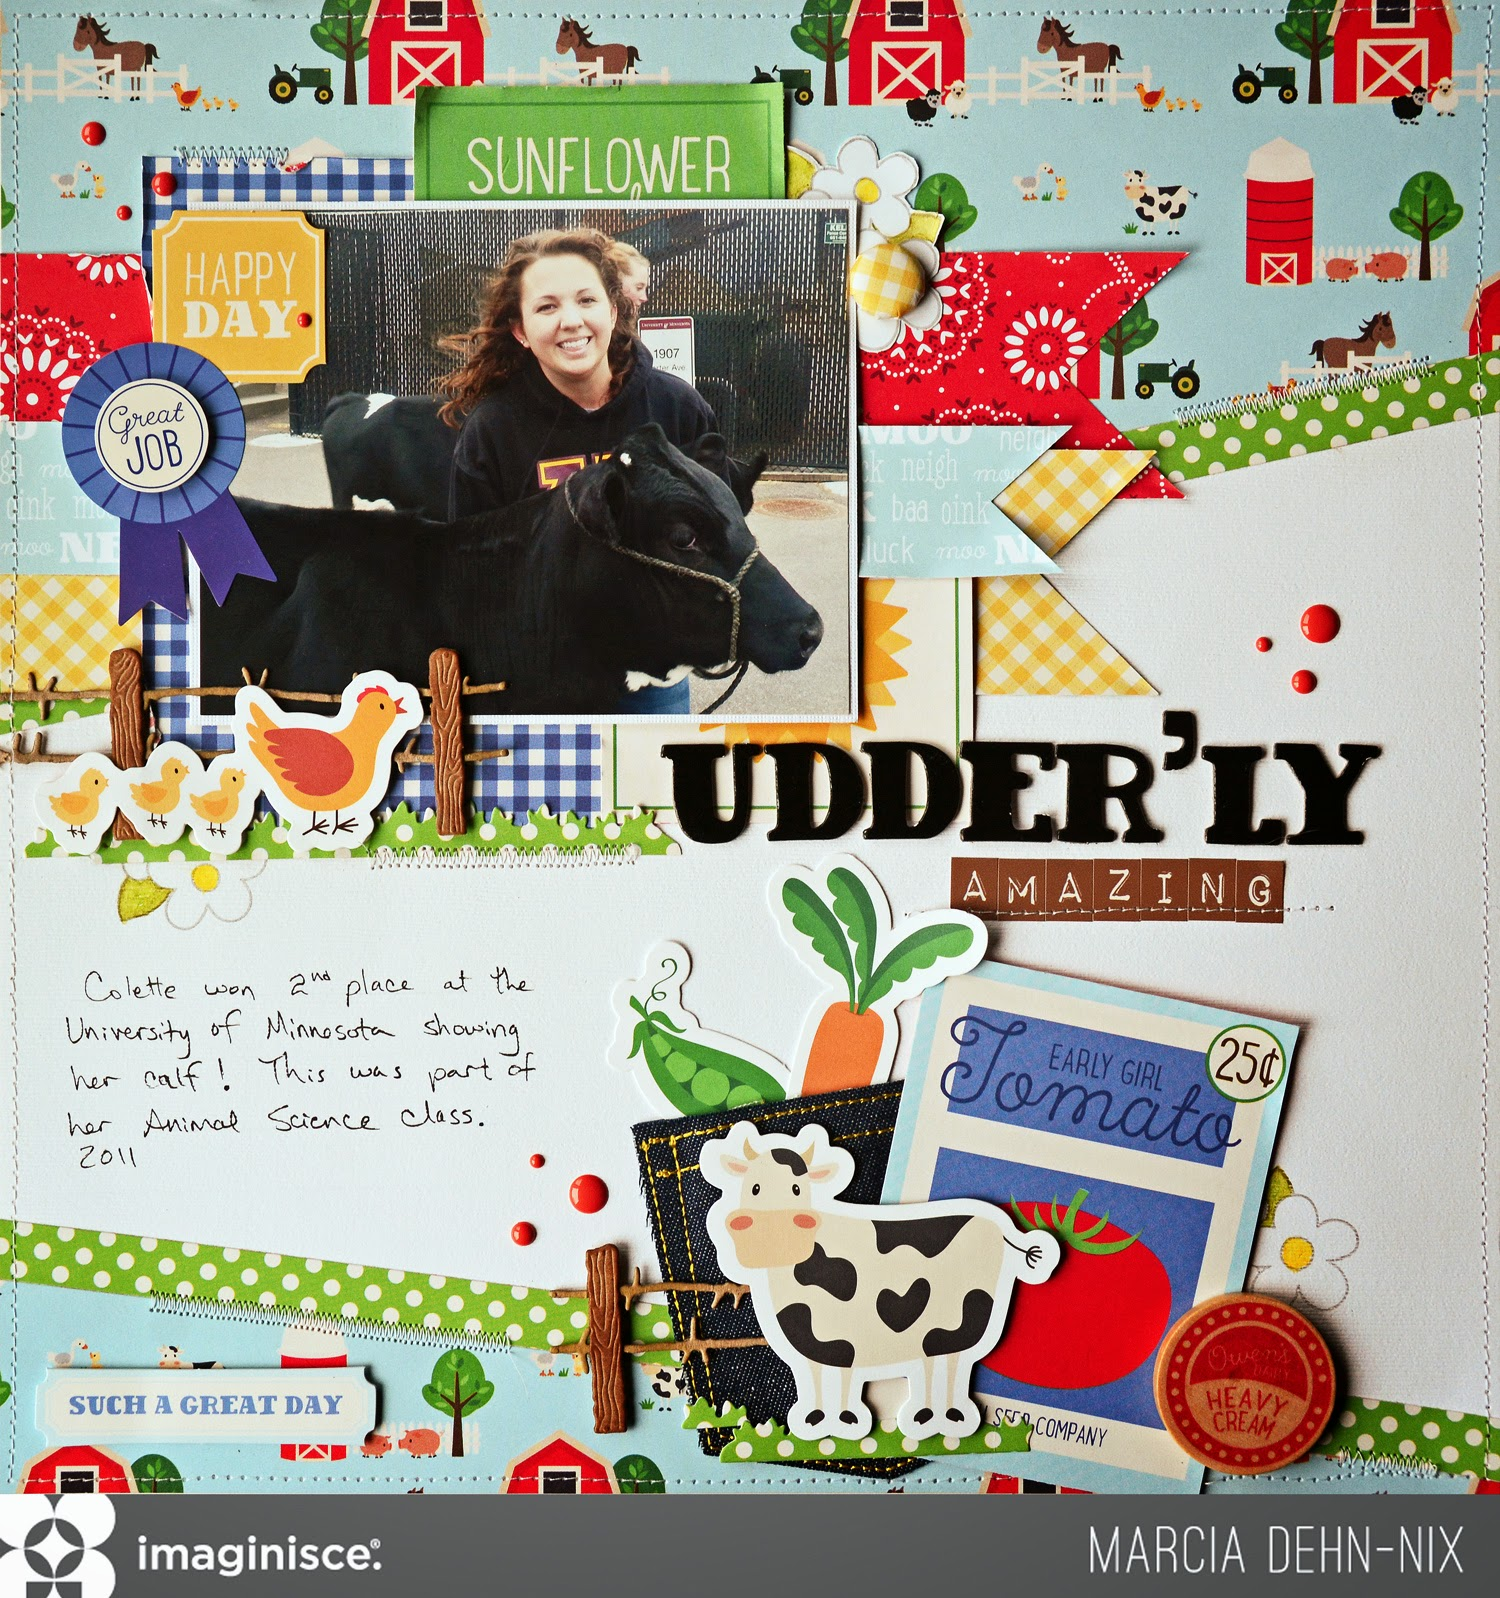 'Udder' ly Amazing!